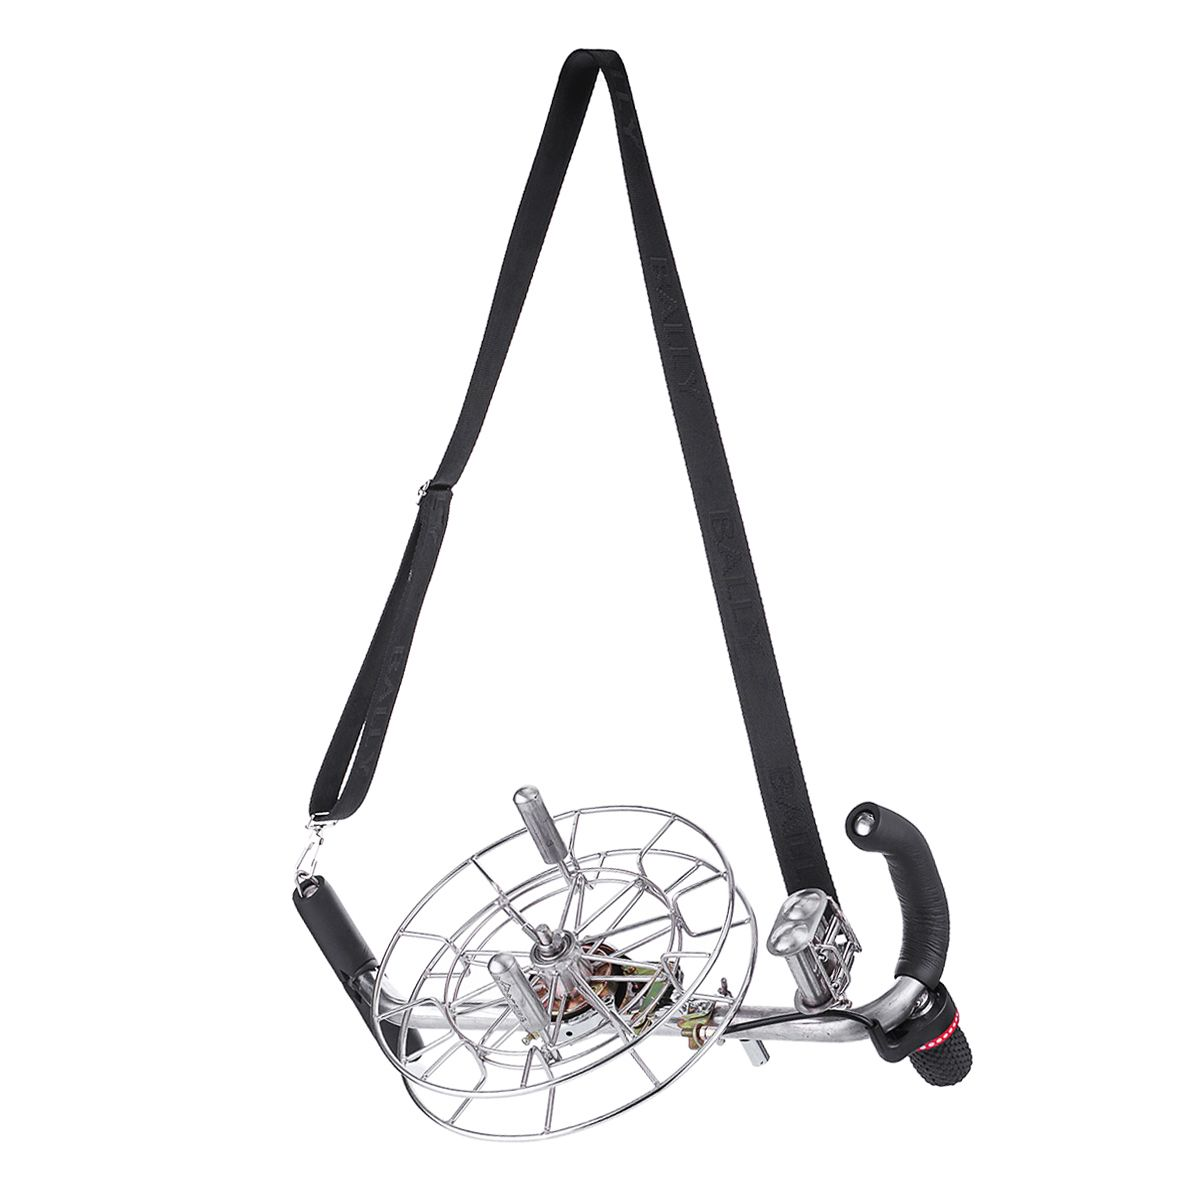 26/28cm 4 Roller Stainless Kite Line Winder Reel Silent String Ball Bearing Brake For Parafoil Flying Kite with a Shoulder Strap